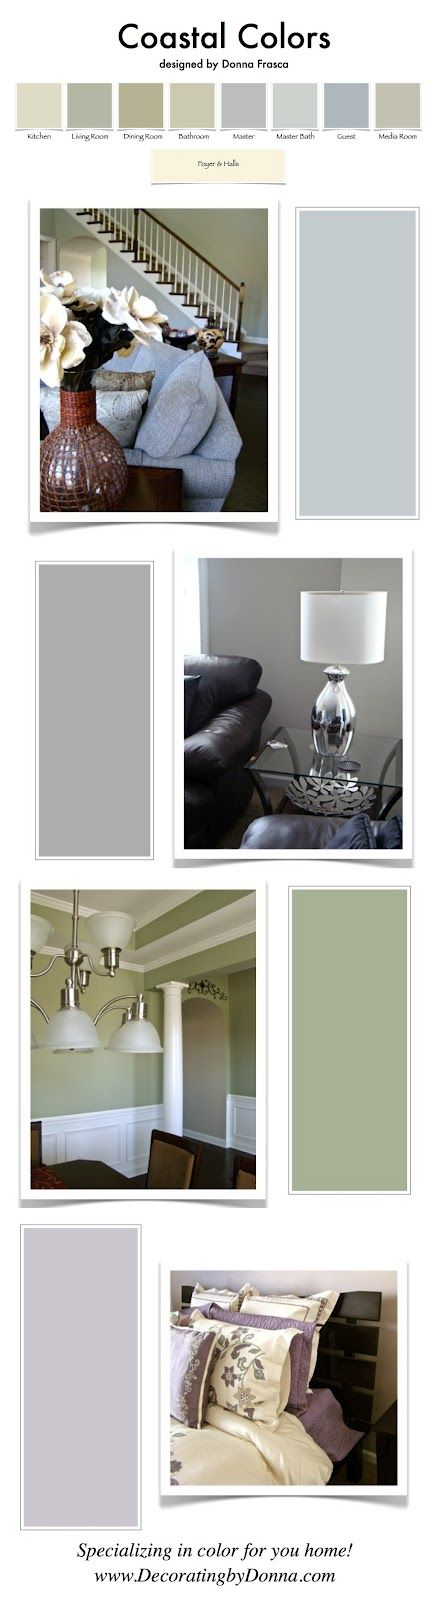 Coastal Colors Ideas 4 Smee Maria Pinterest Popular: sophisticated paint colors for living room